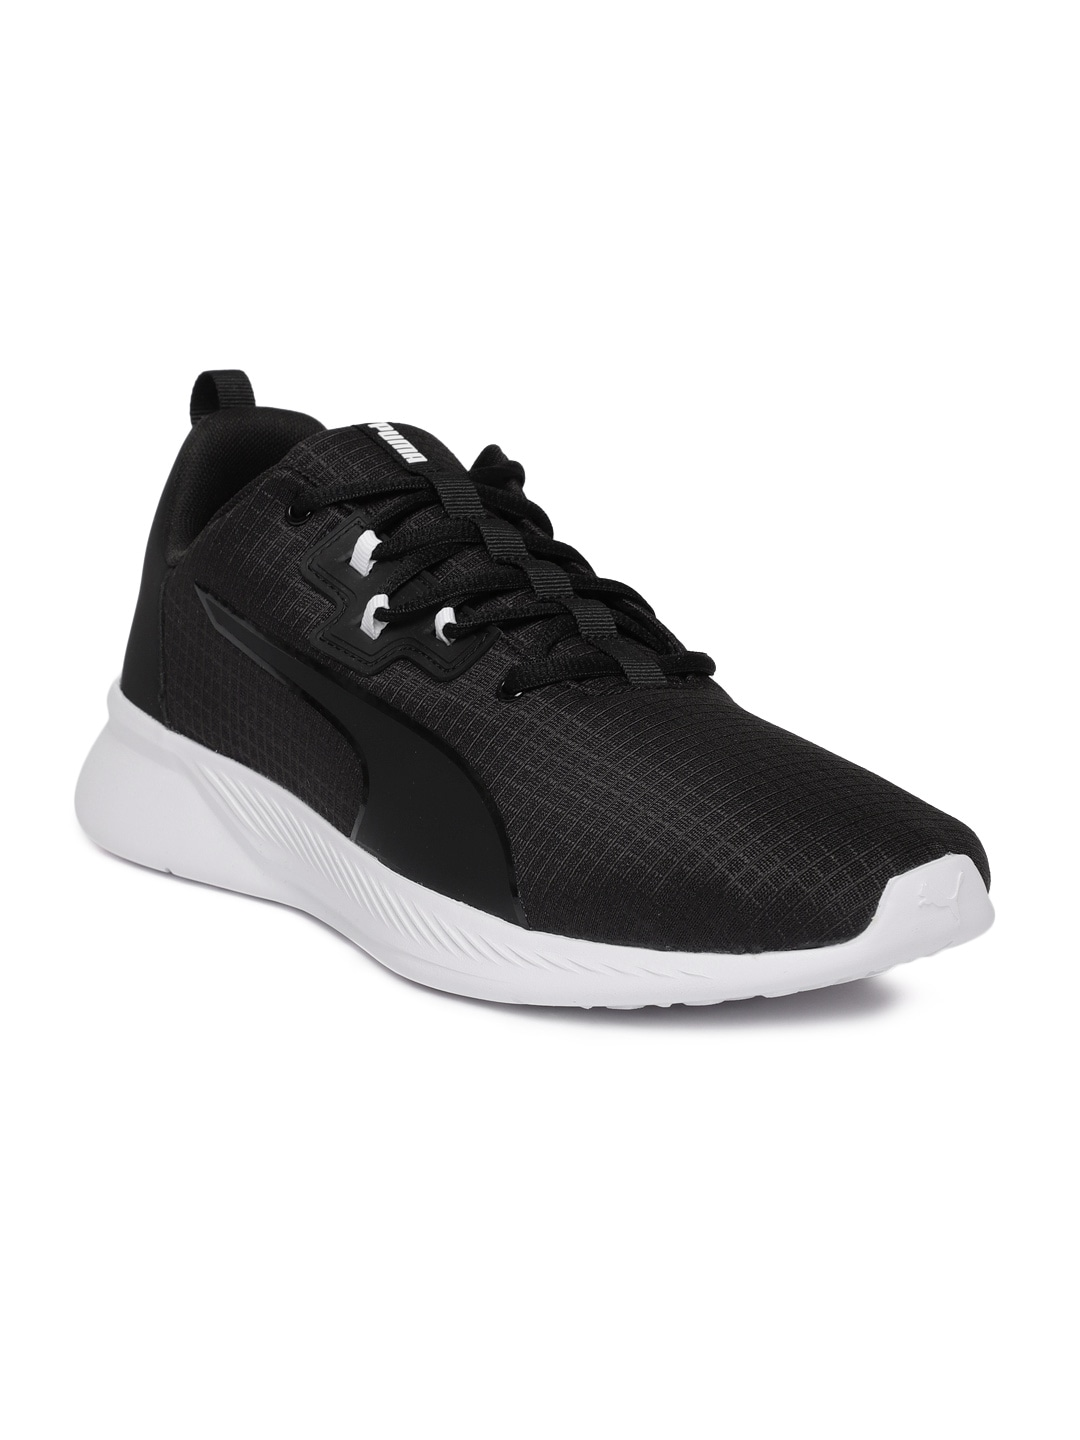 dc1d308ef25f Puma Ferrari Black Shoes Casual - Buy Puma Ferrari Black Shoes Casual  online in India